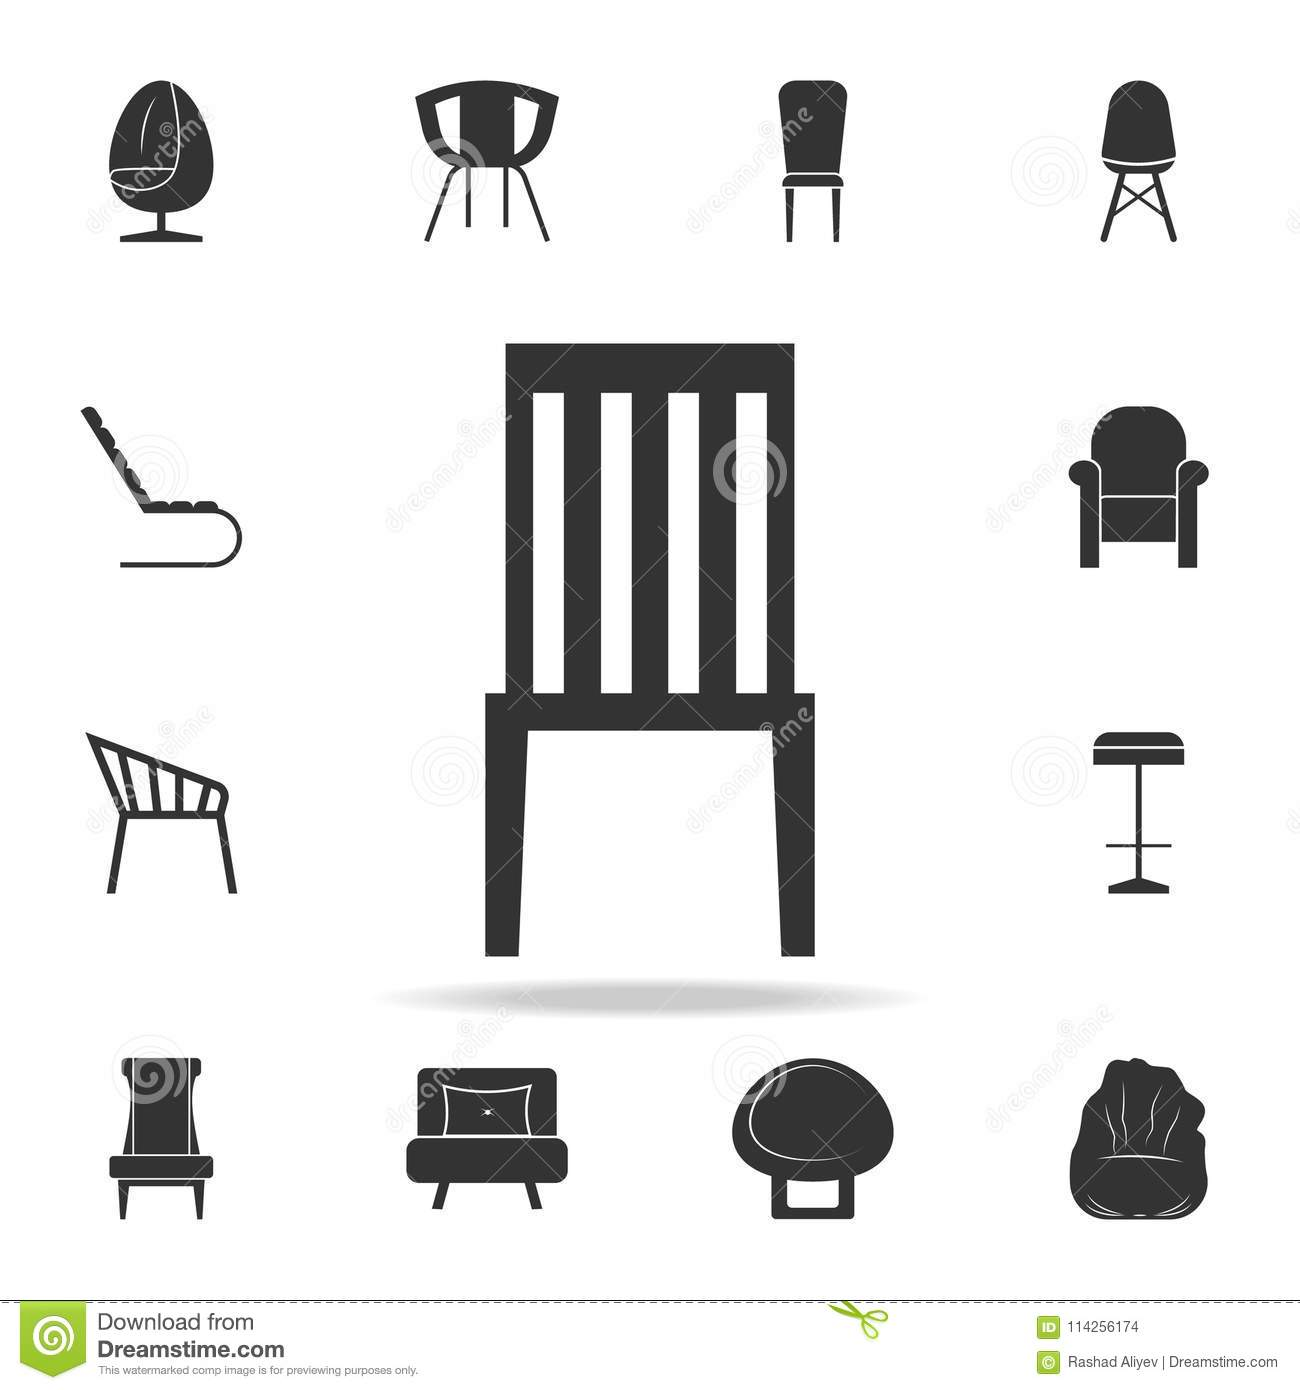 Chair icon detailed set of furniture icons premium quality graphic design one of the collection icons for websites web design mobile app on white